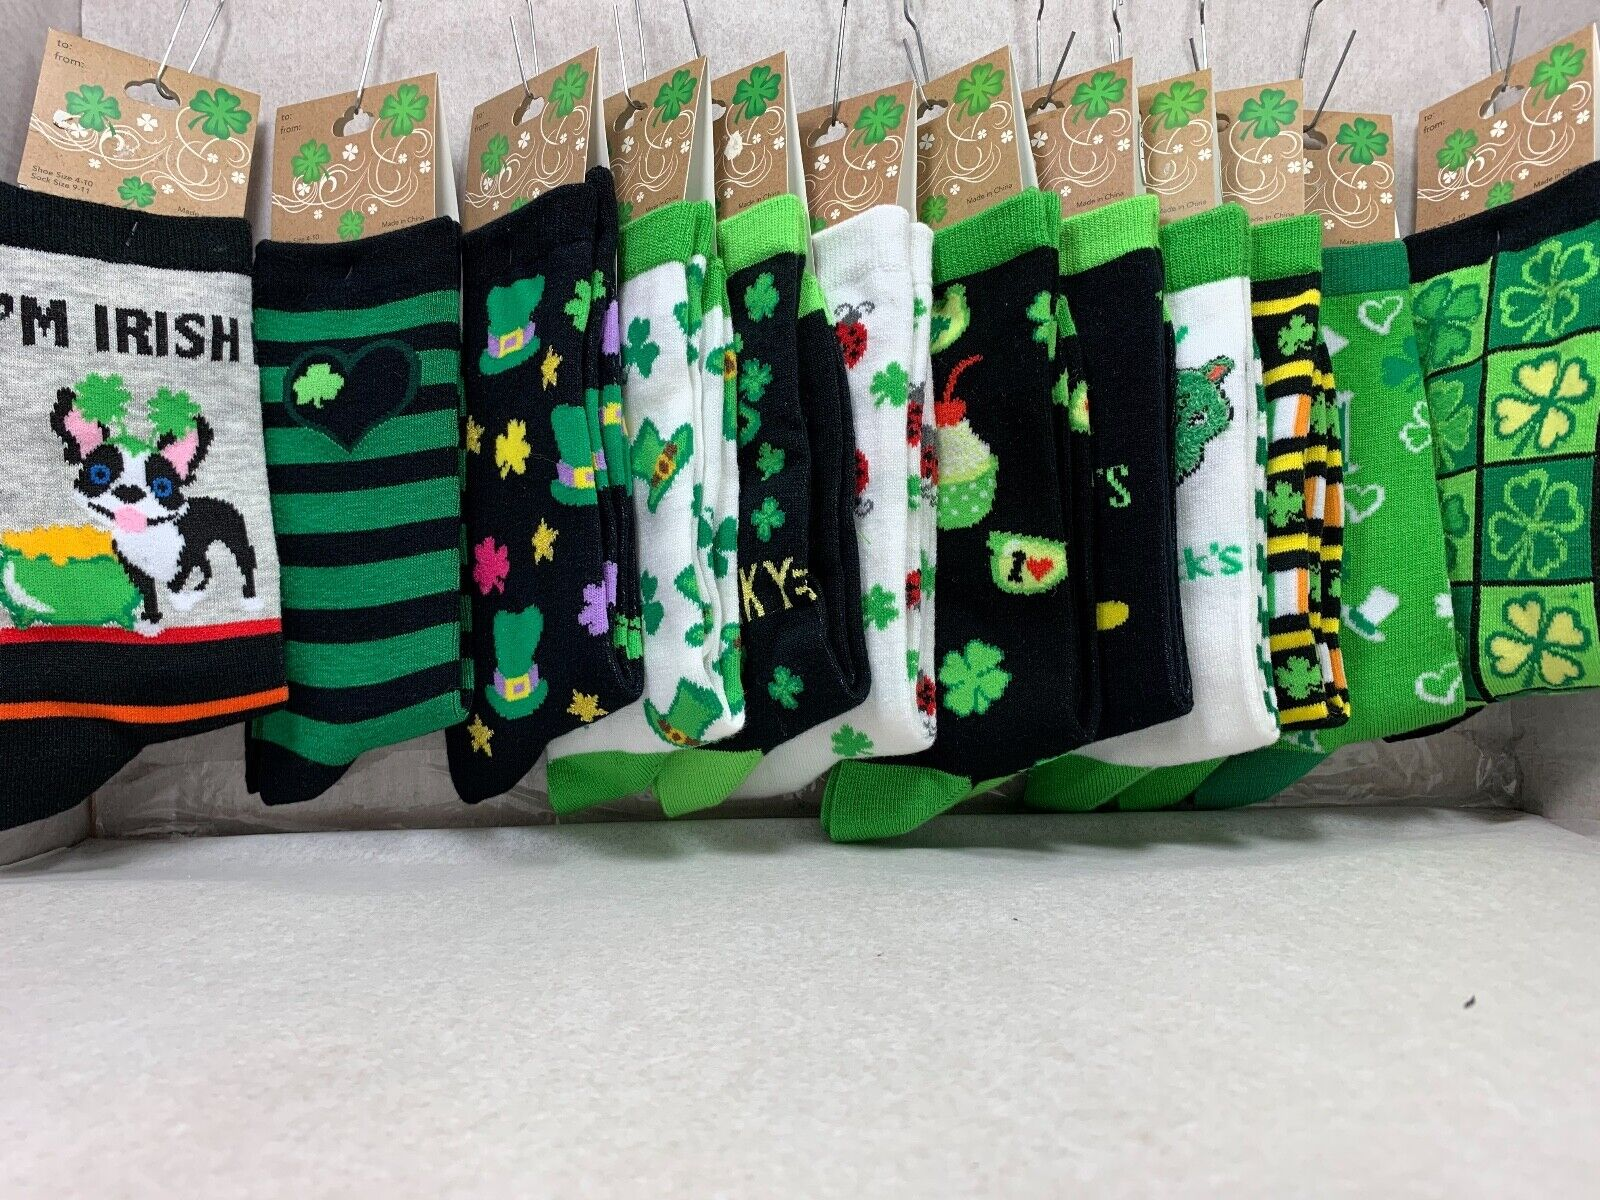 ST. PATRICK DAY 14 PATTERNS WOMEN CREW SOCKS SIZE 9-11 BOYS 5-9 BY K.BELL Clothing, Shoes & Accessories